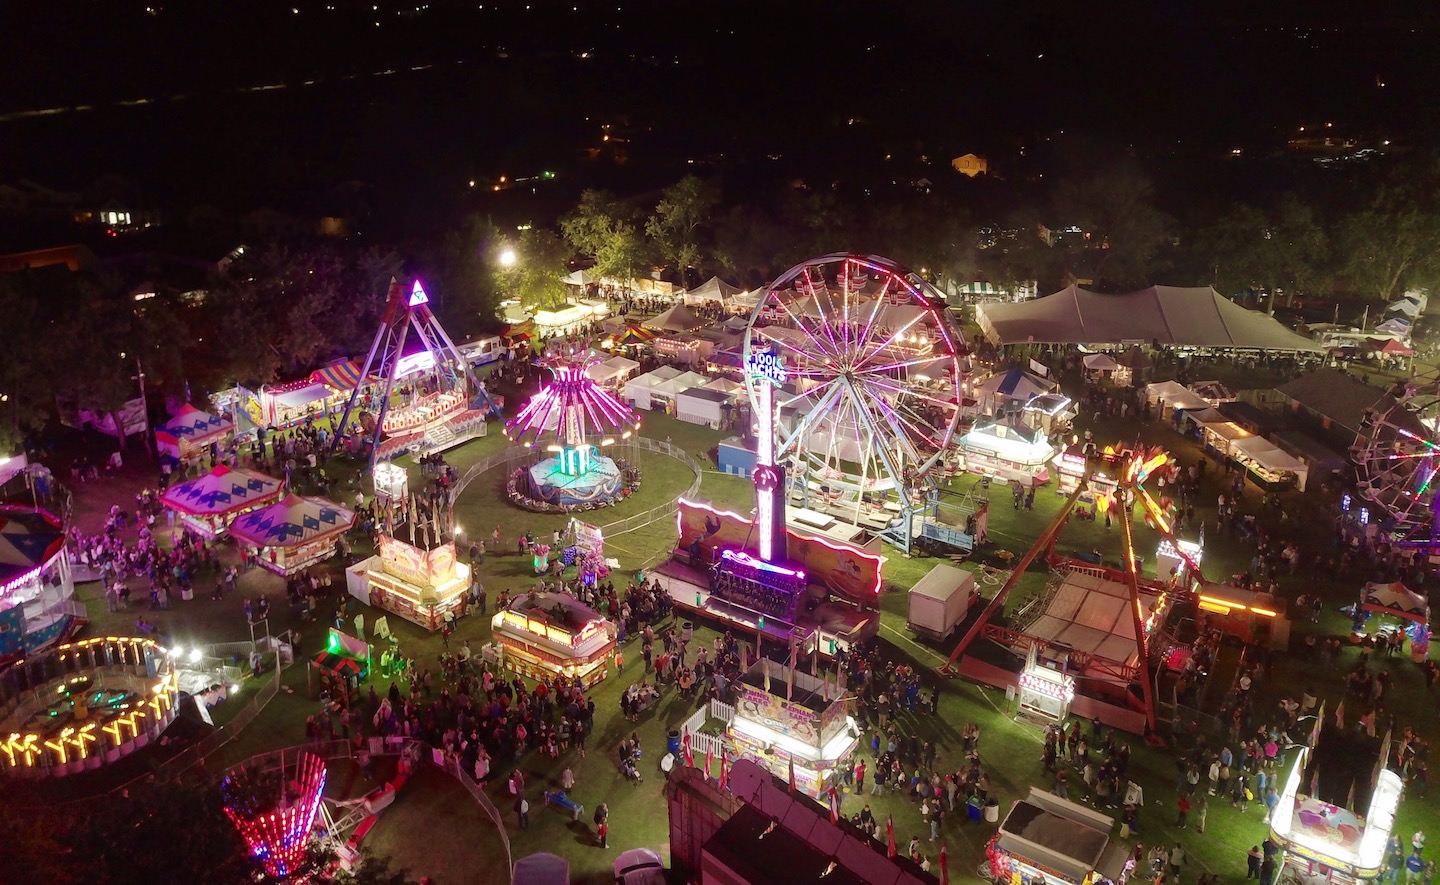 An aerial view of the Peach Festival by Graeme Litt.